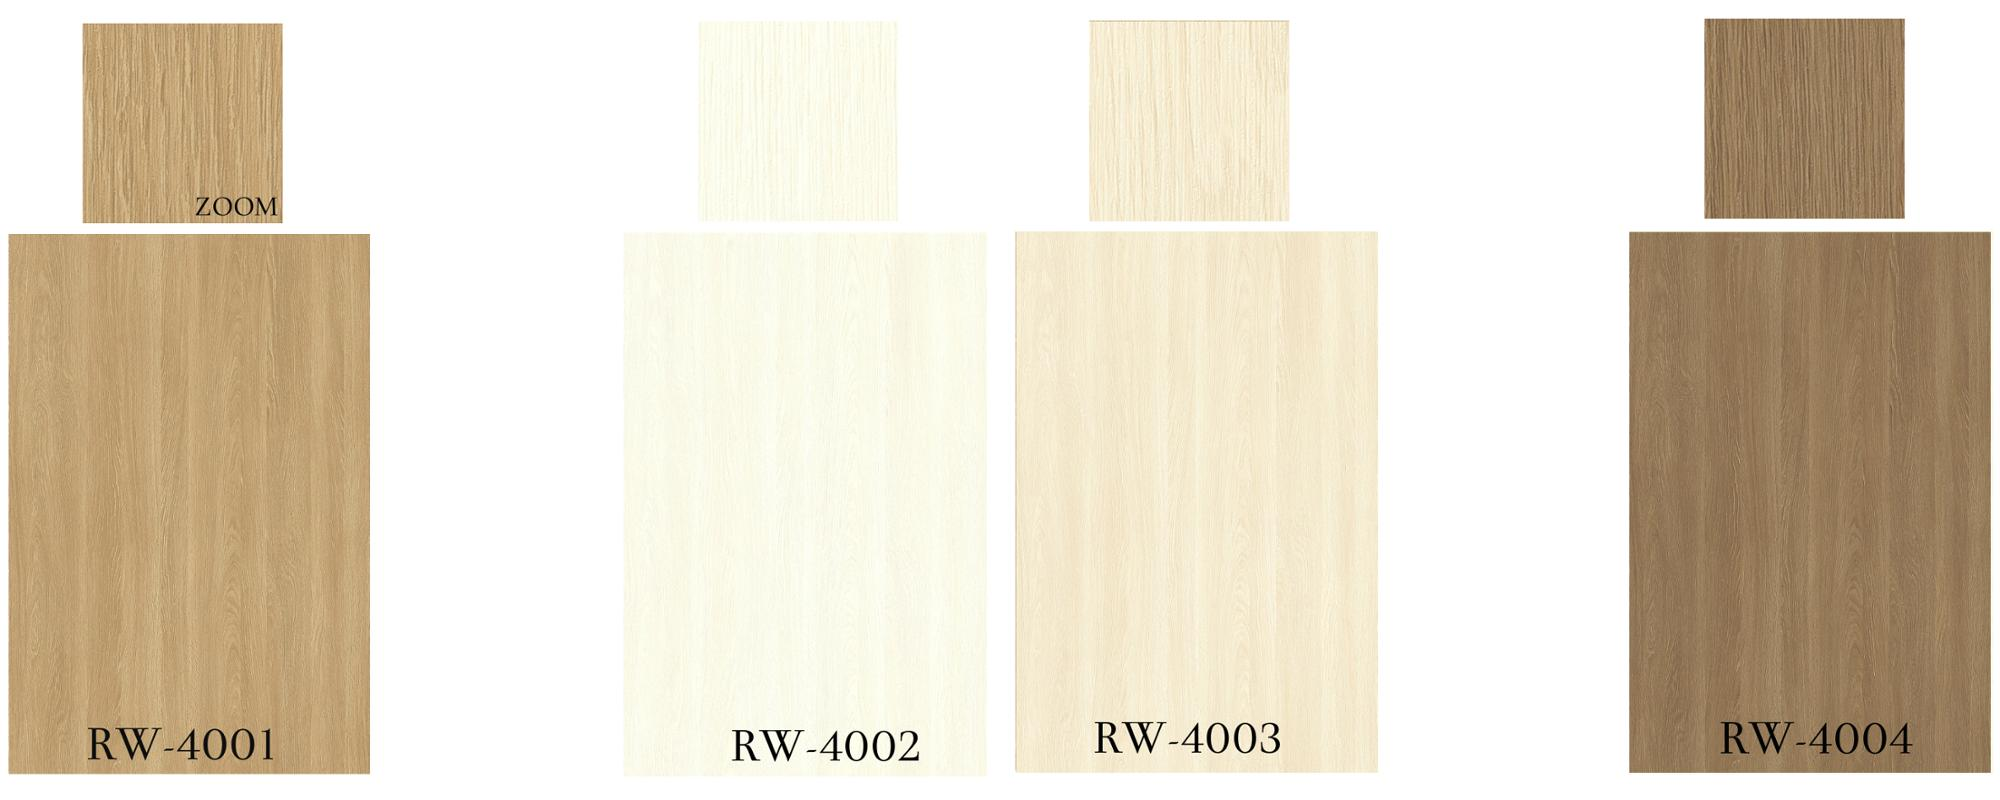 NEW RW-4001 - RW-4008, Real Wood Oak Patterns, PVC Decorative Film, Made in Japan